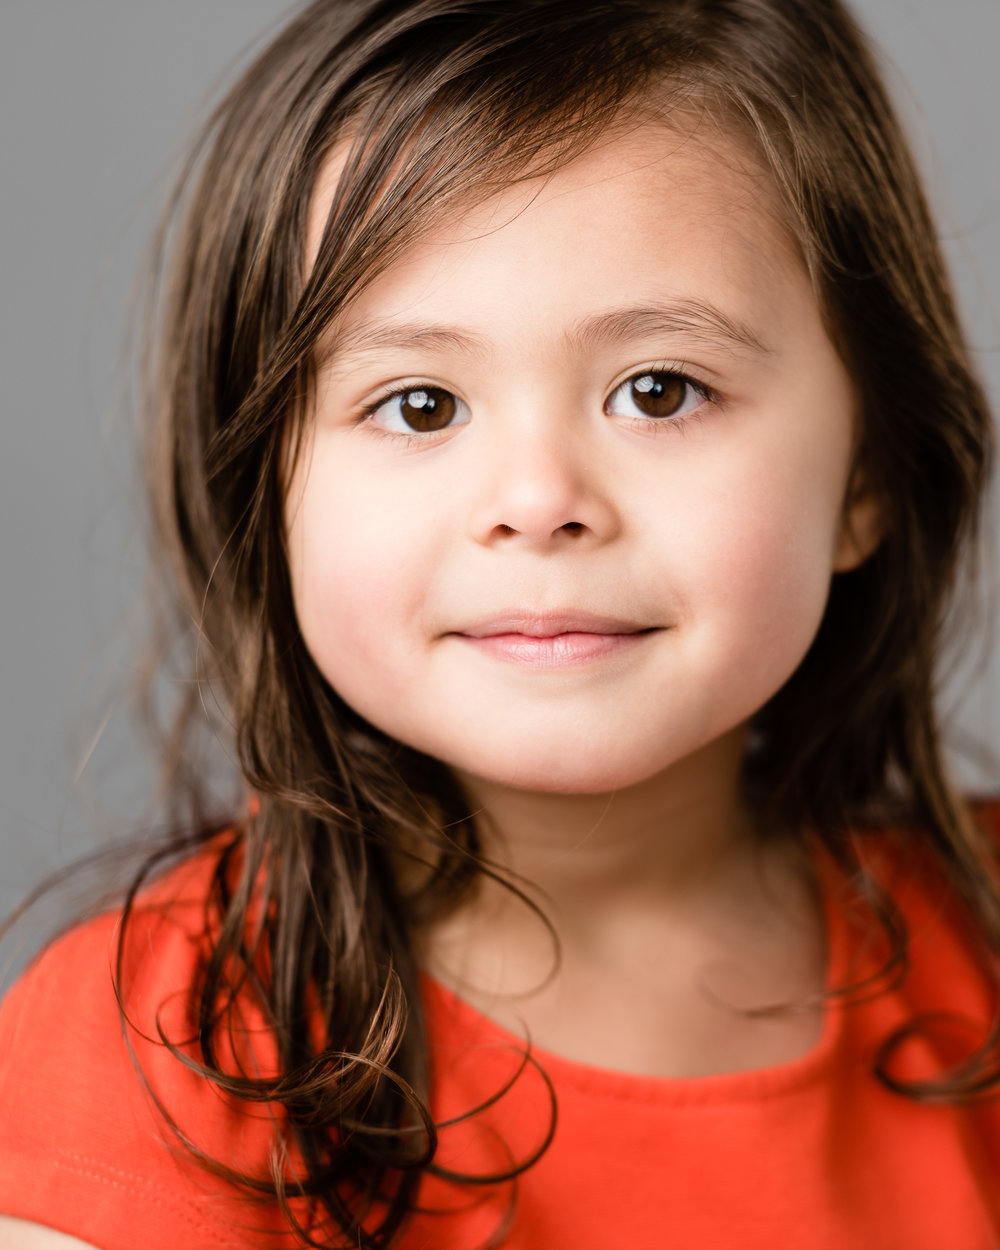 ChildrenHeadshots047.jpg